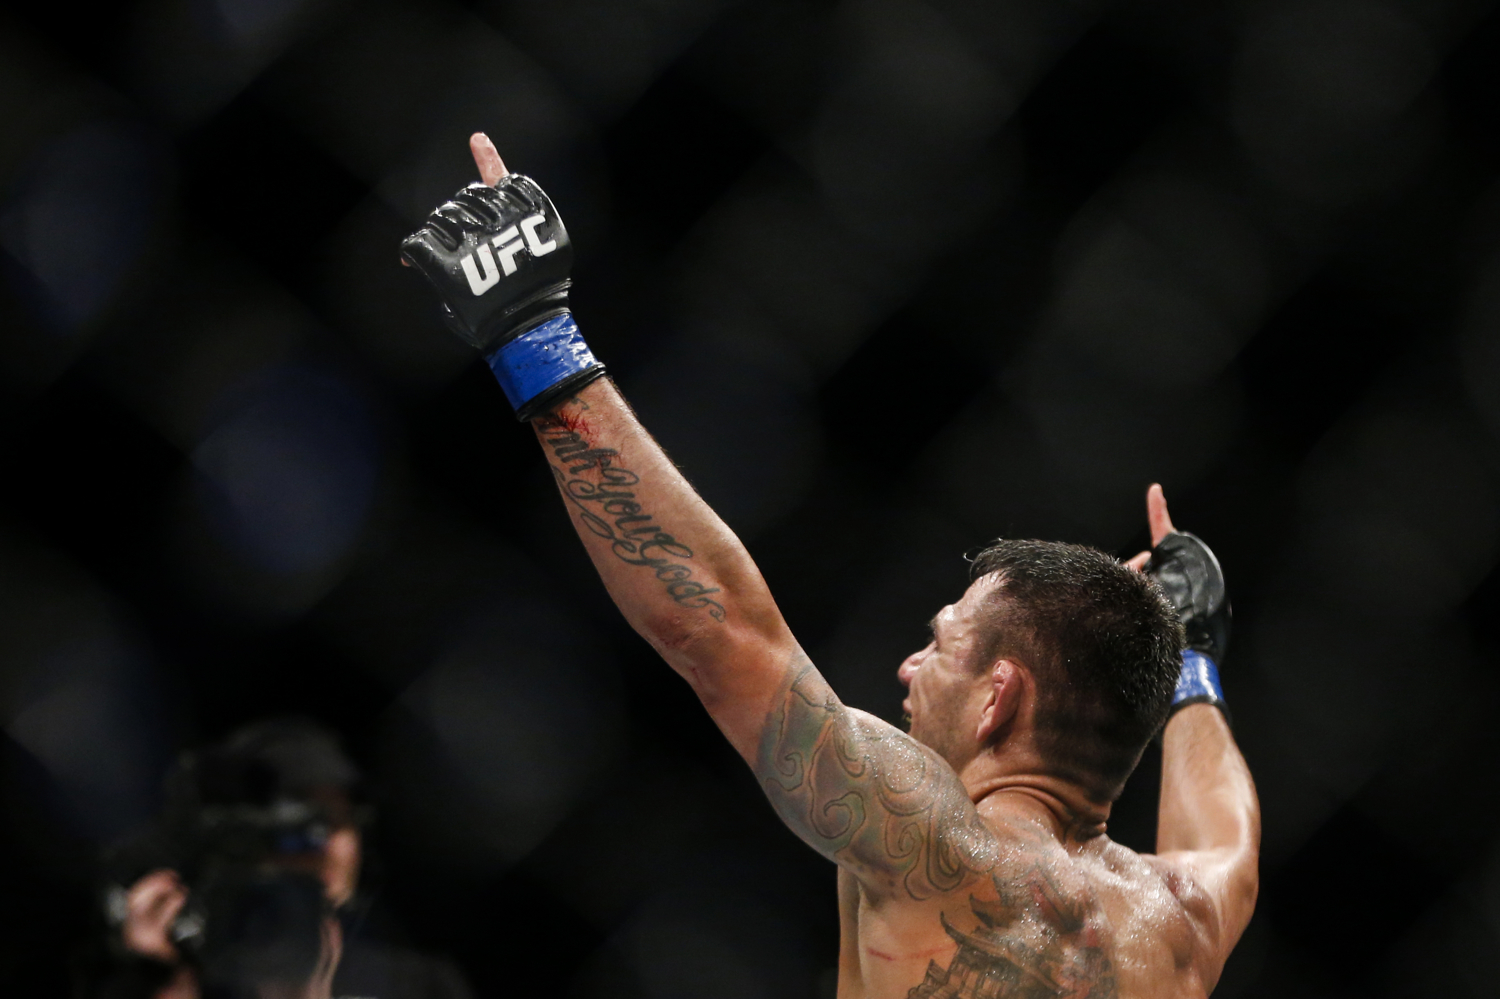 Rafael dos Anjos of Brazil celebrates his welterweight bout win over Tarec Saffiedine of Belgium at the UFC Fight Night at the Singapore Indoor Stadium on June 17, 2017.